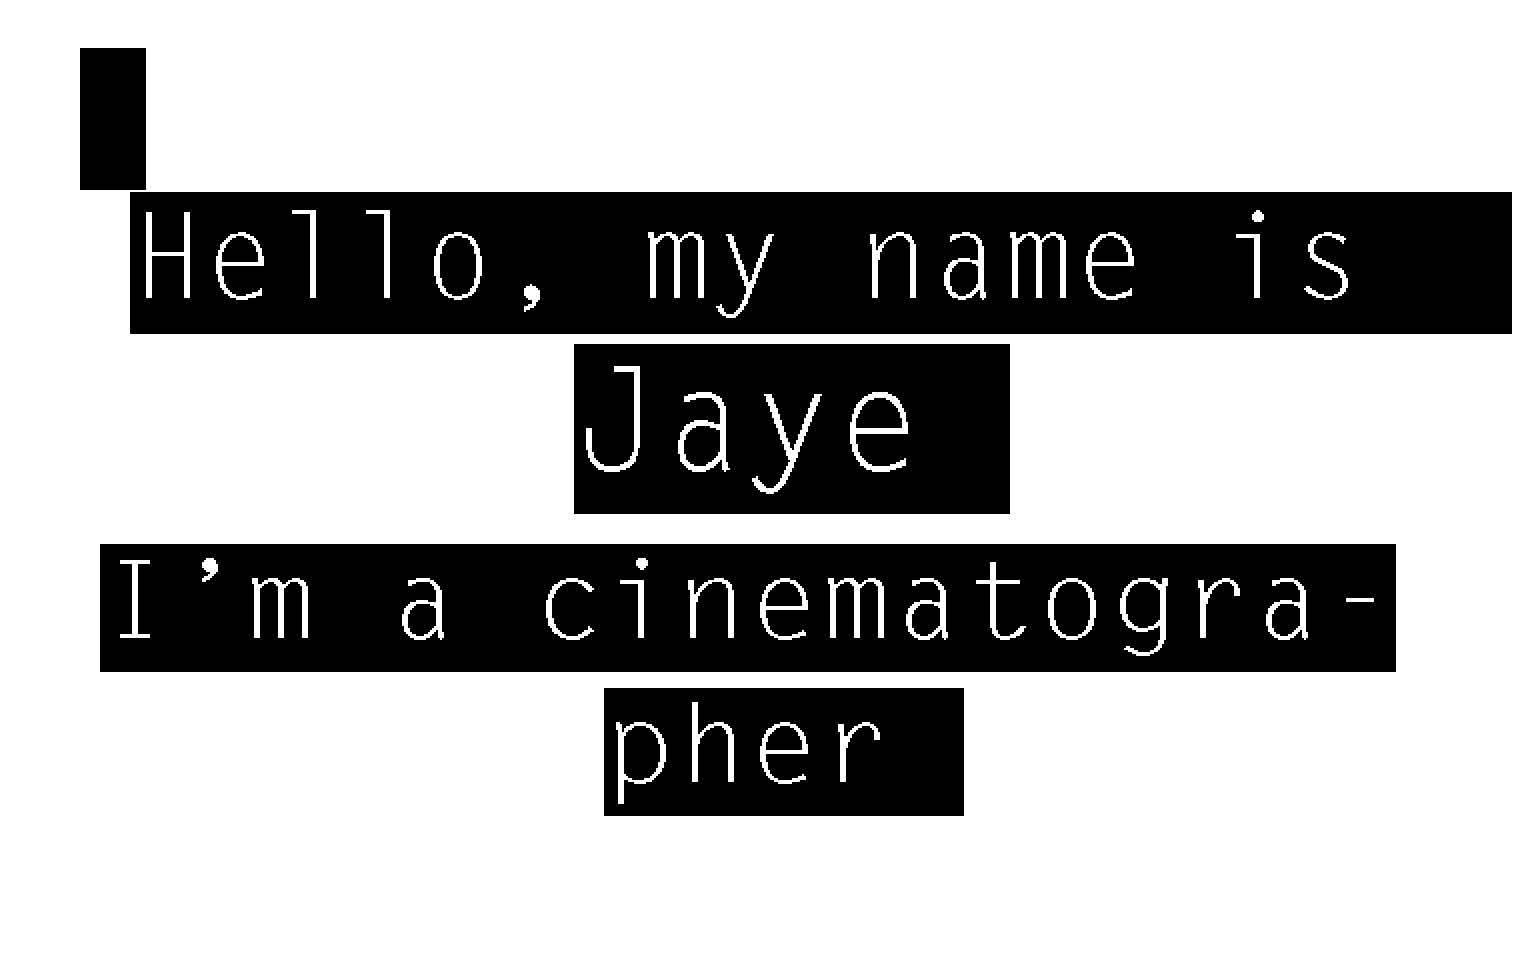 Jaye Neo [梁棋捷] has lensed projects covering a wide range of genres, in film & digital formats. He is a member of the Singapore Society of Cinematographers.